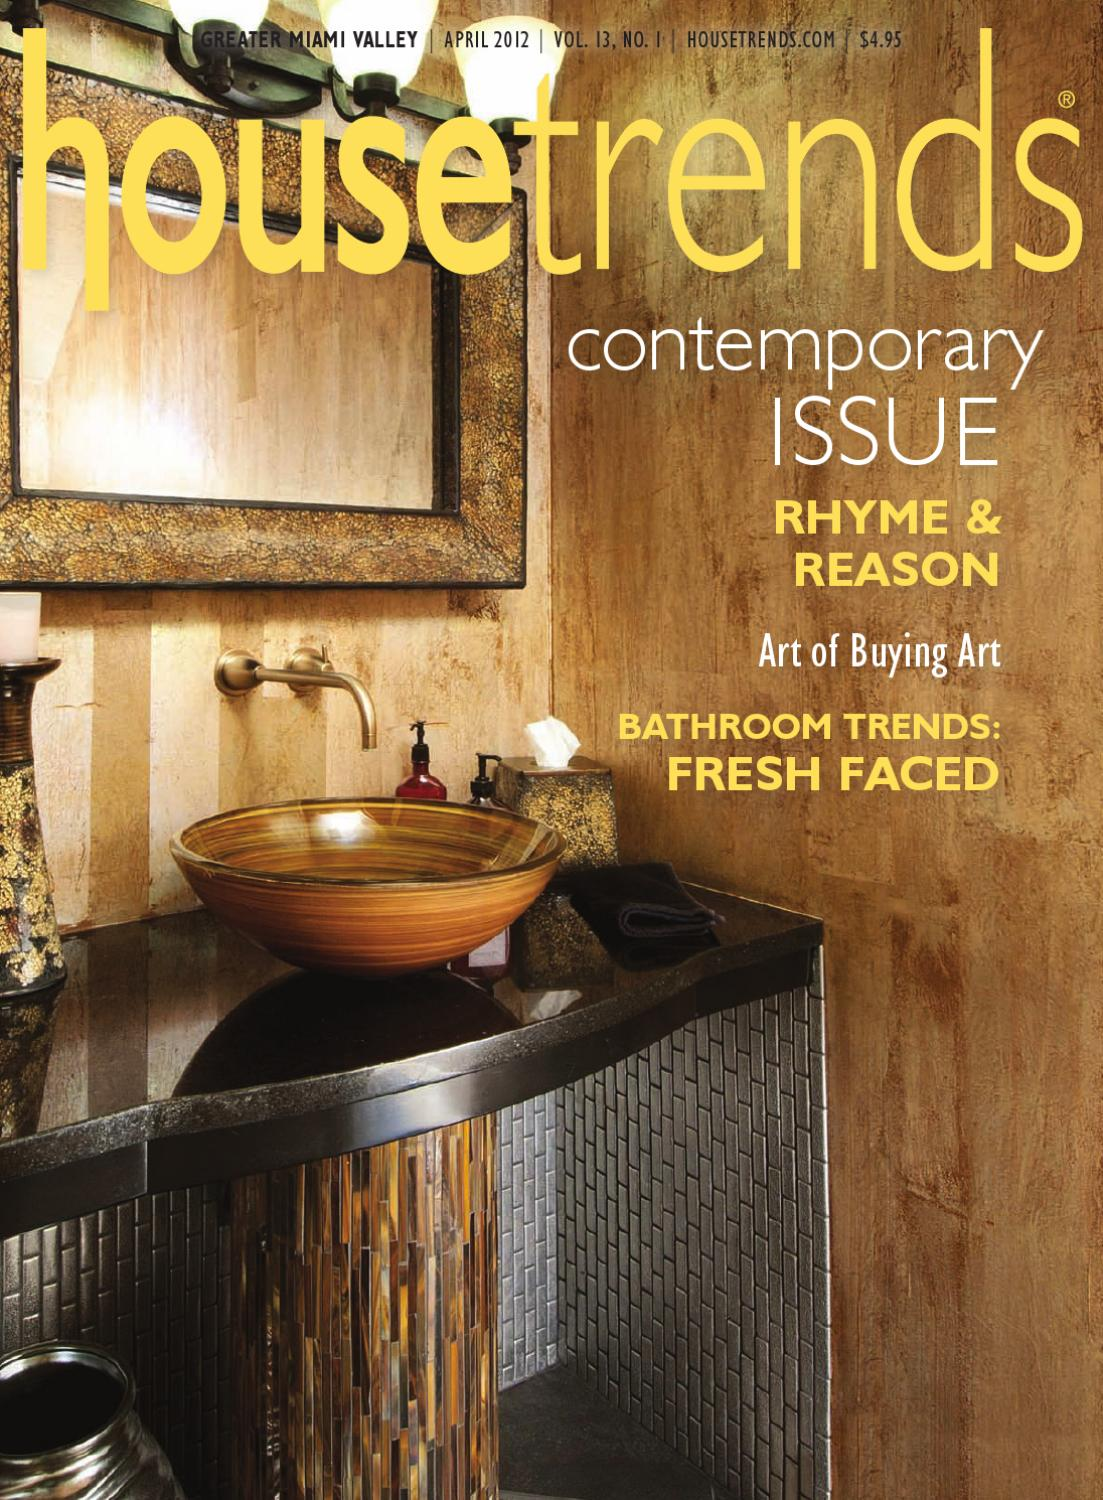 Dayton Housetrends By Issuu